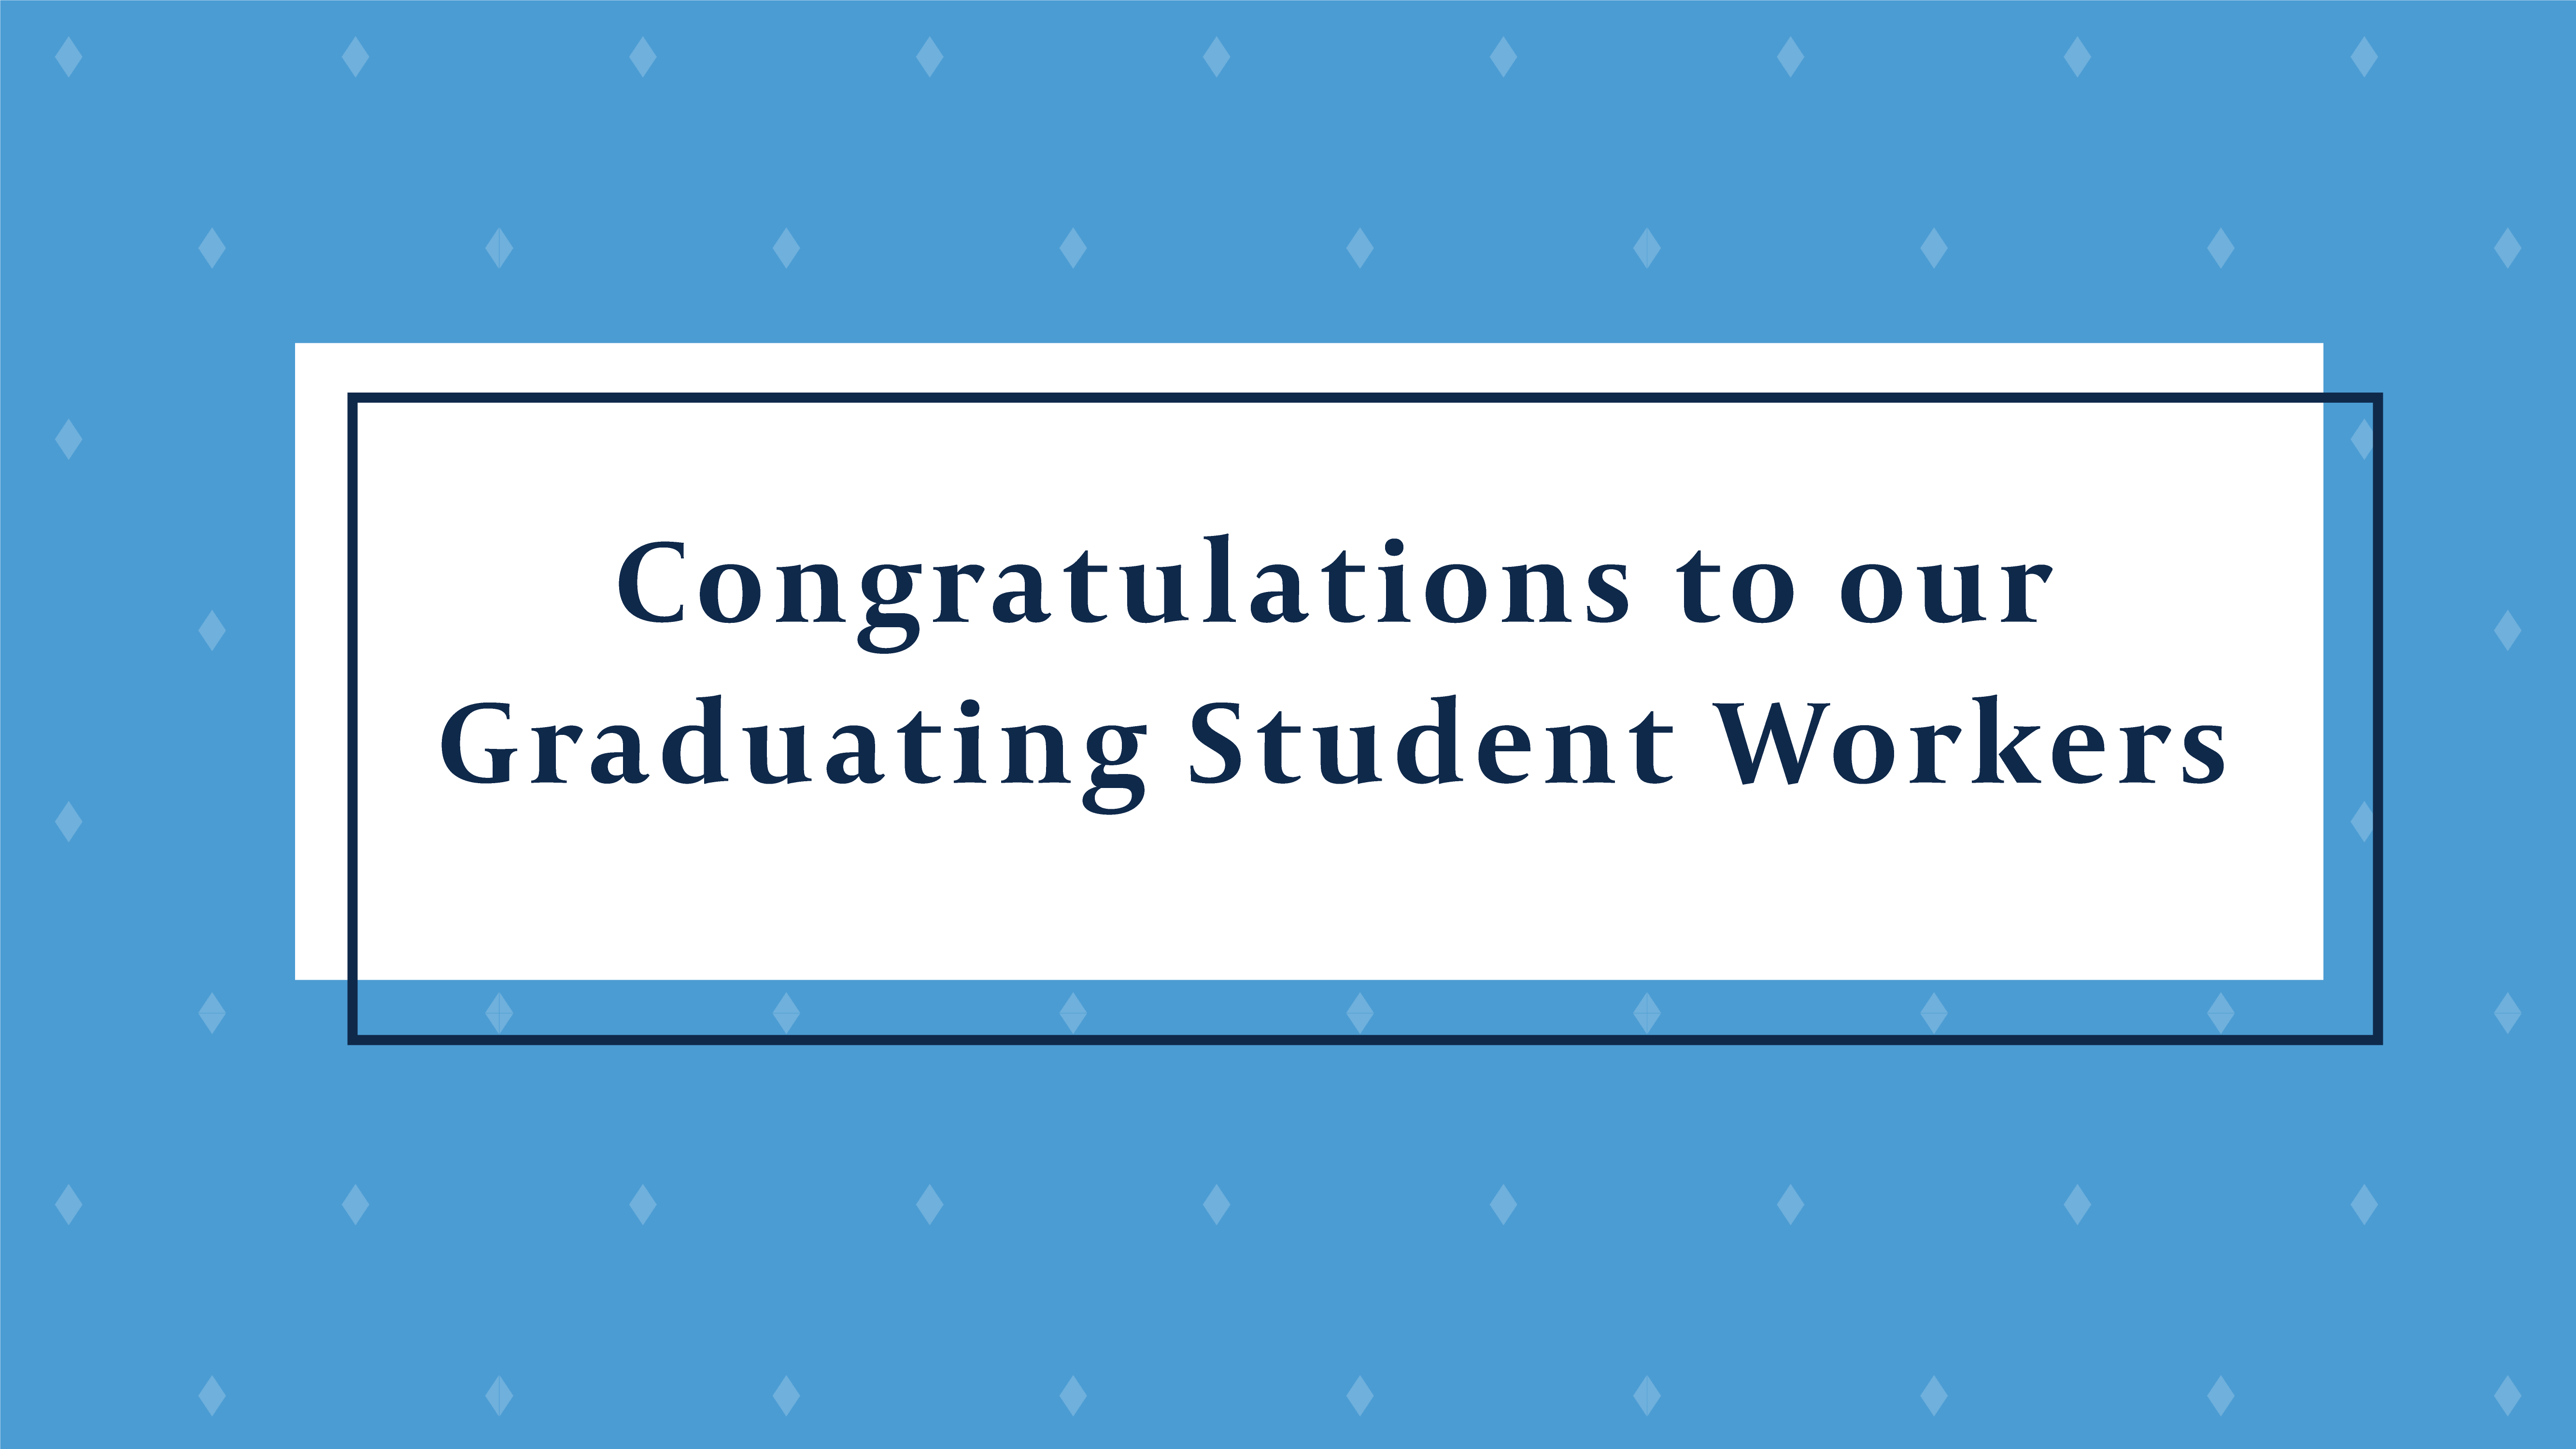 Congratulations to Our Graduating Student Workers!